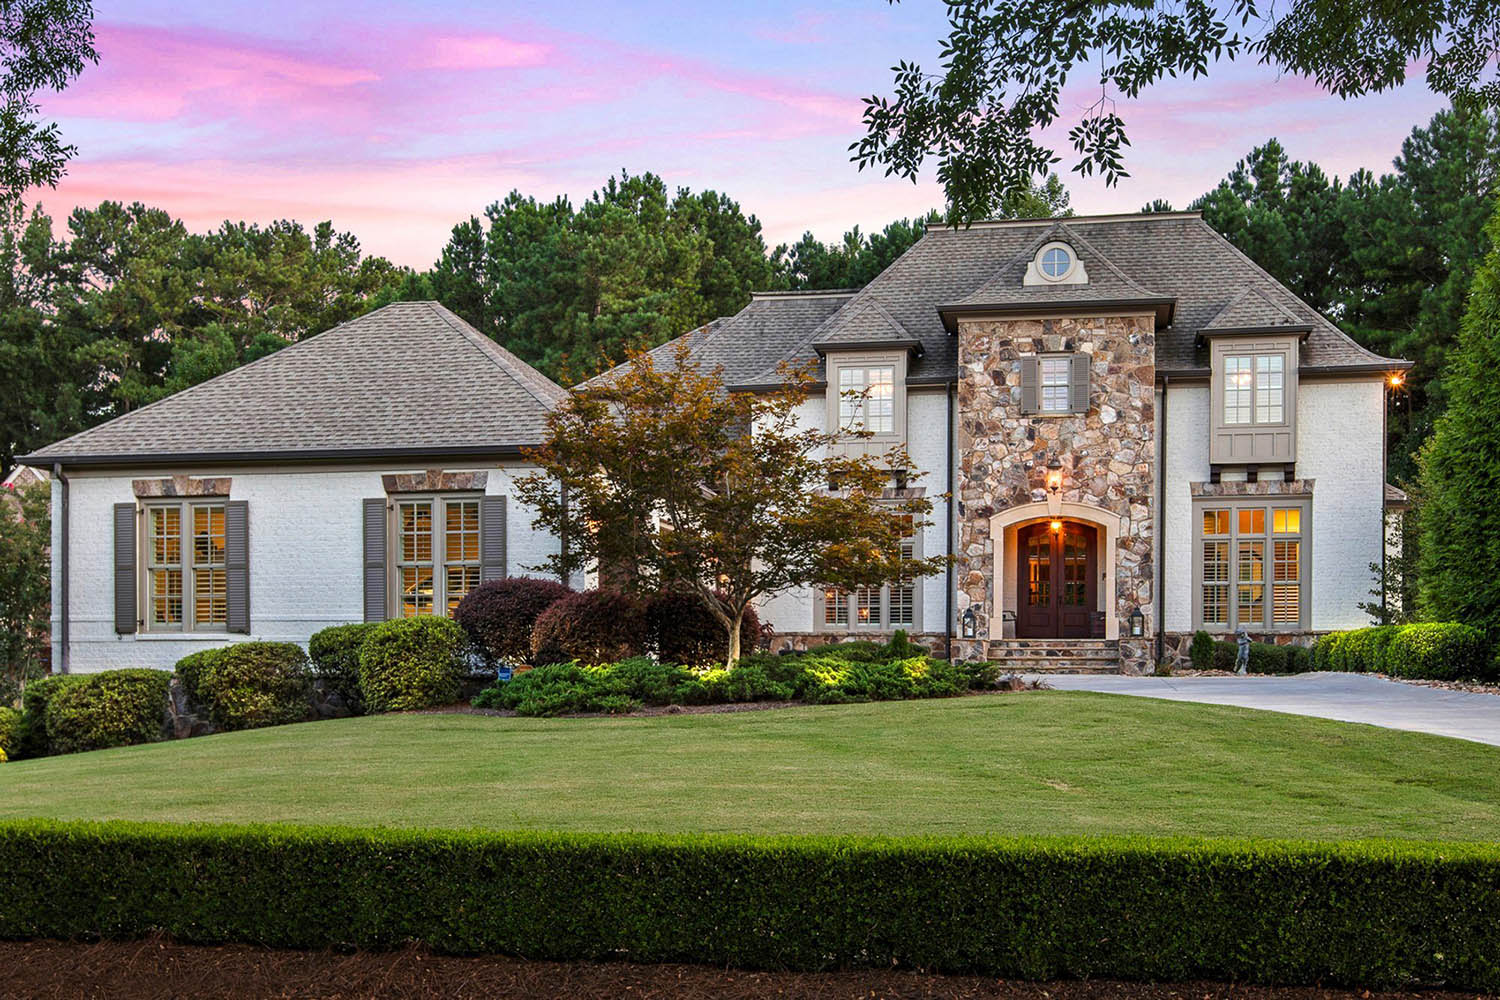 White brick home with real stone veneer and gray shutters. Dark shingled roof with black gutters. Stained real wood front door.